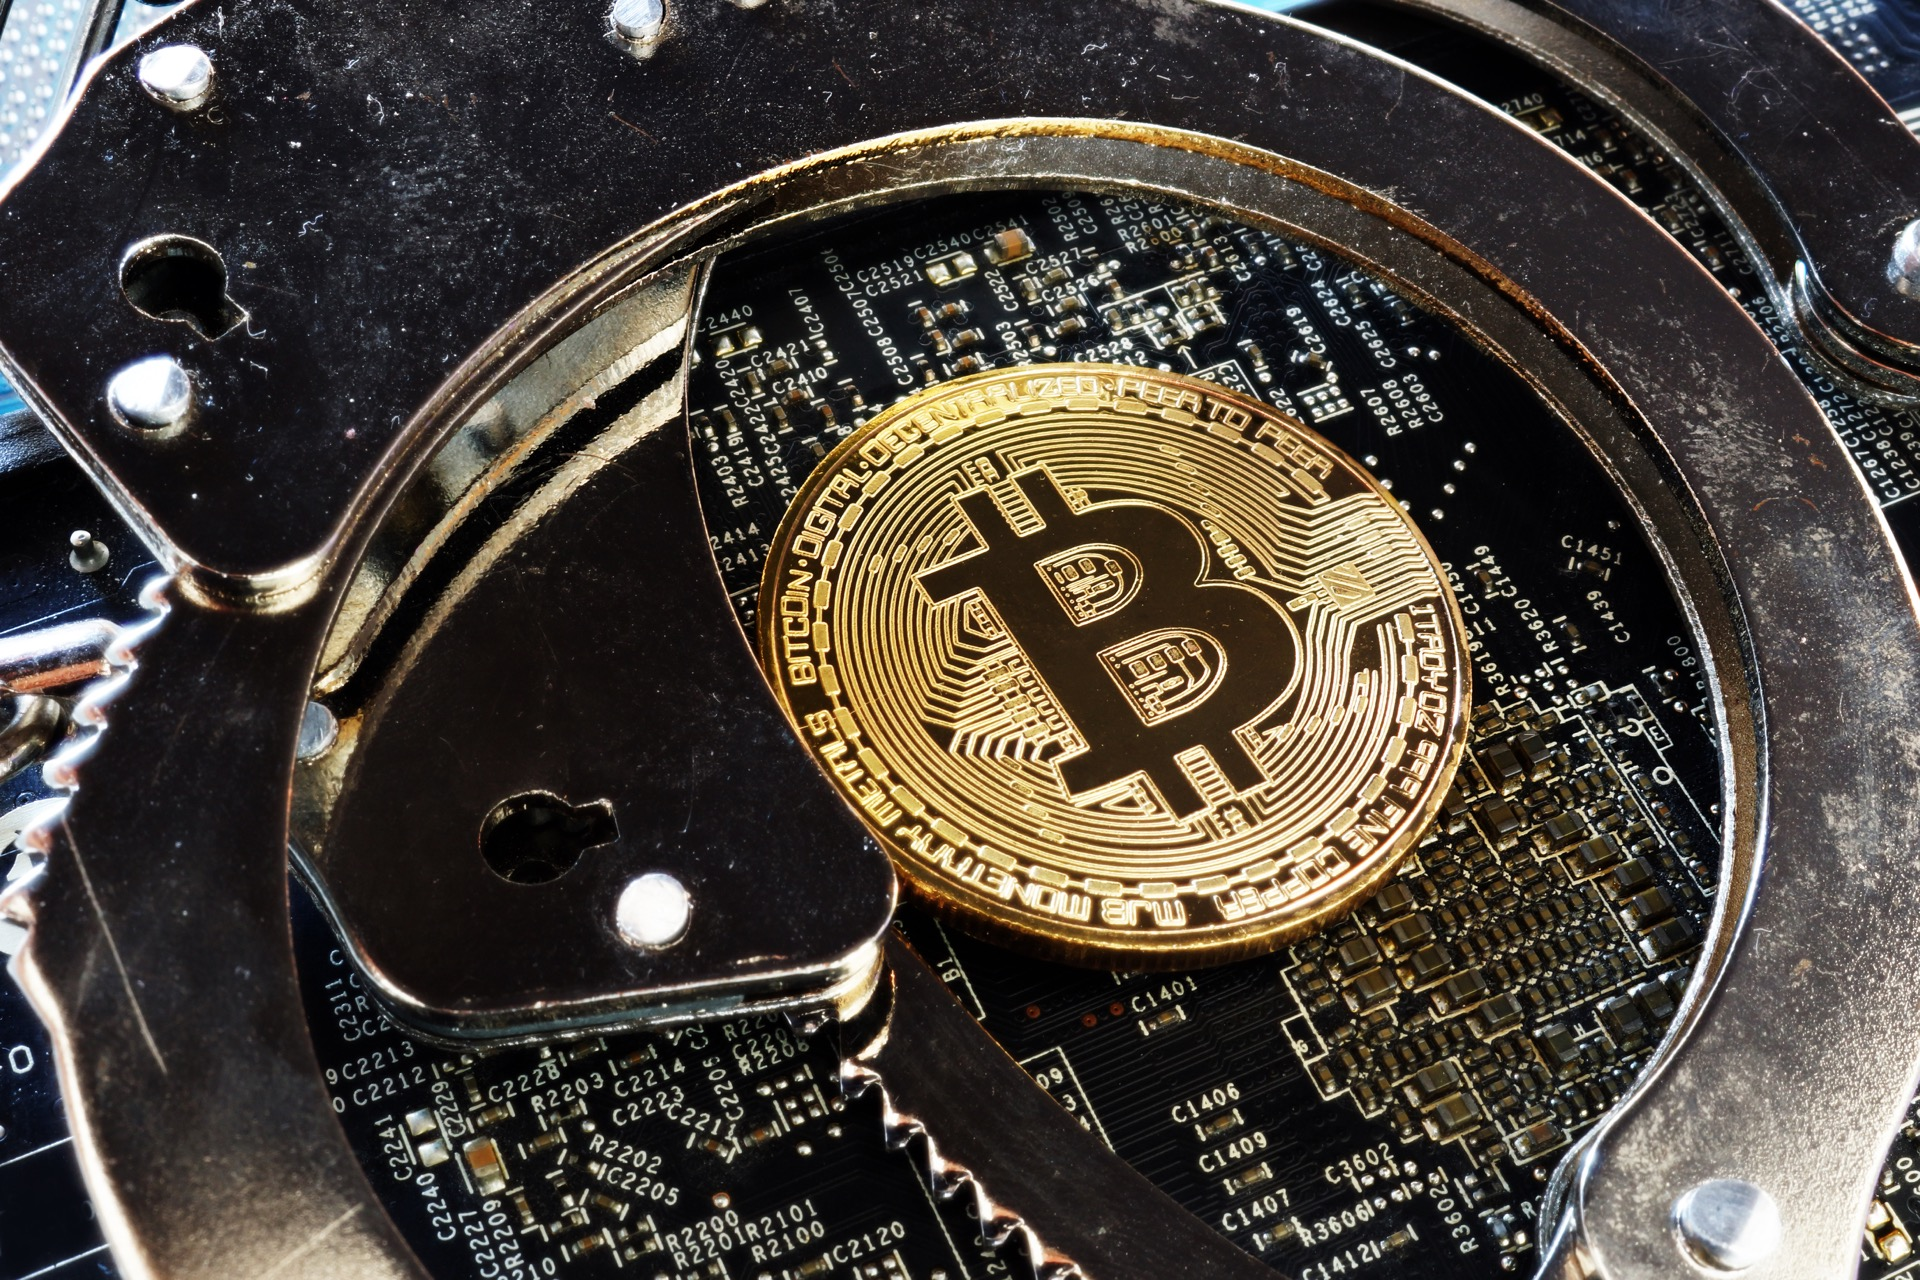 Can't hide those ransoms forever: business to report big crypto payments to IRS